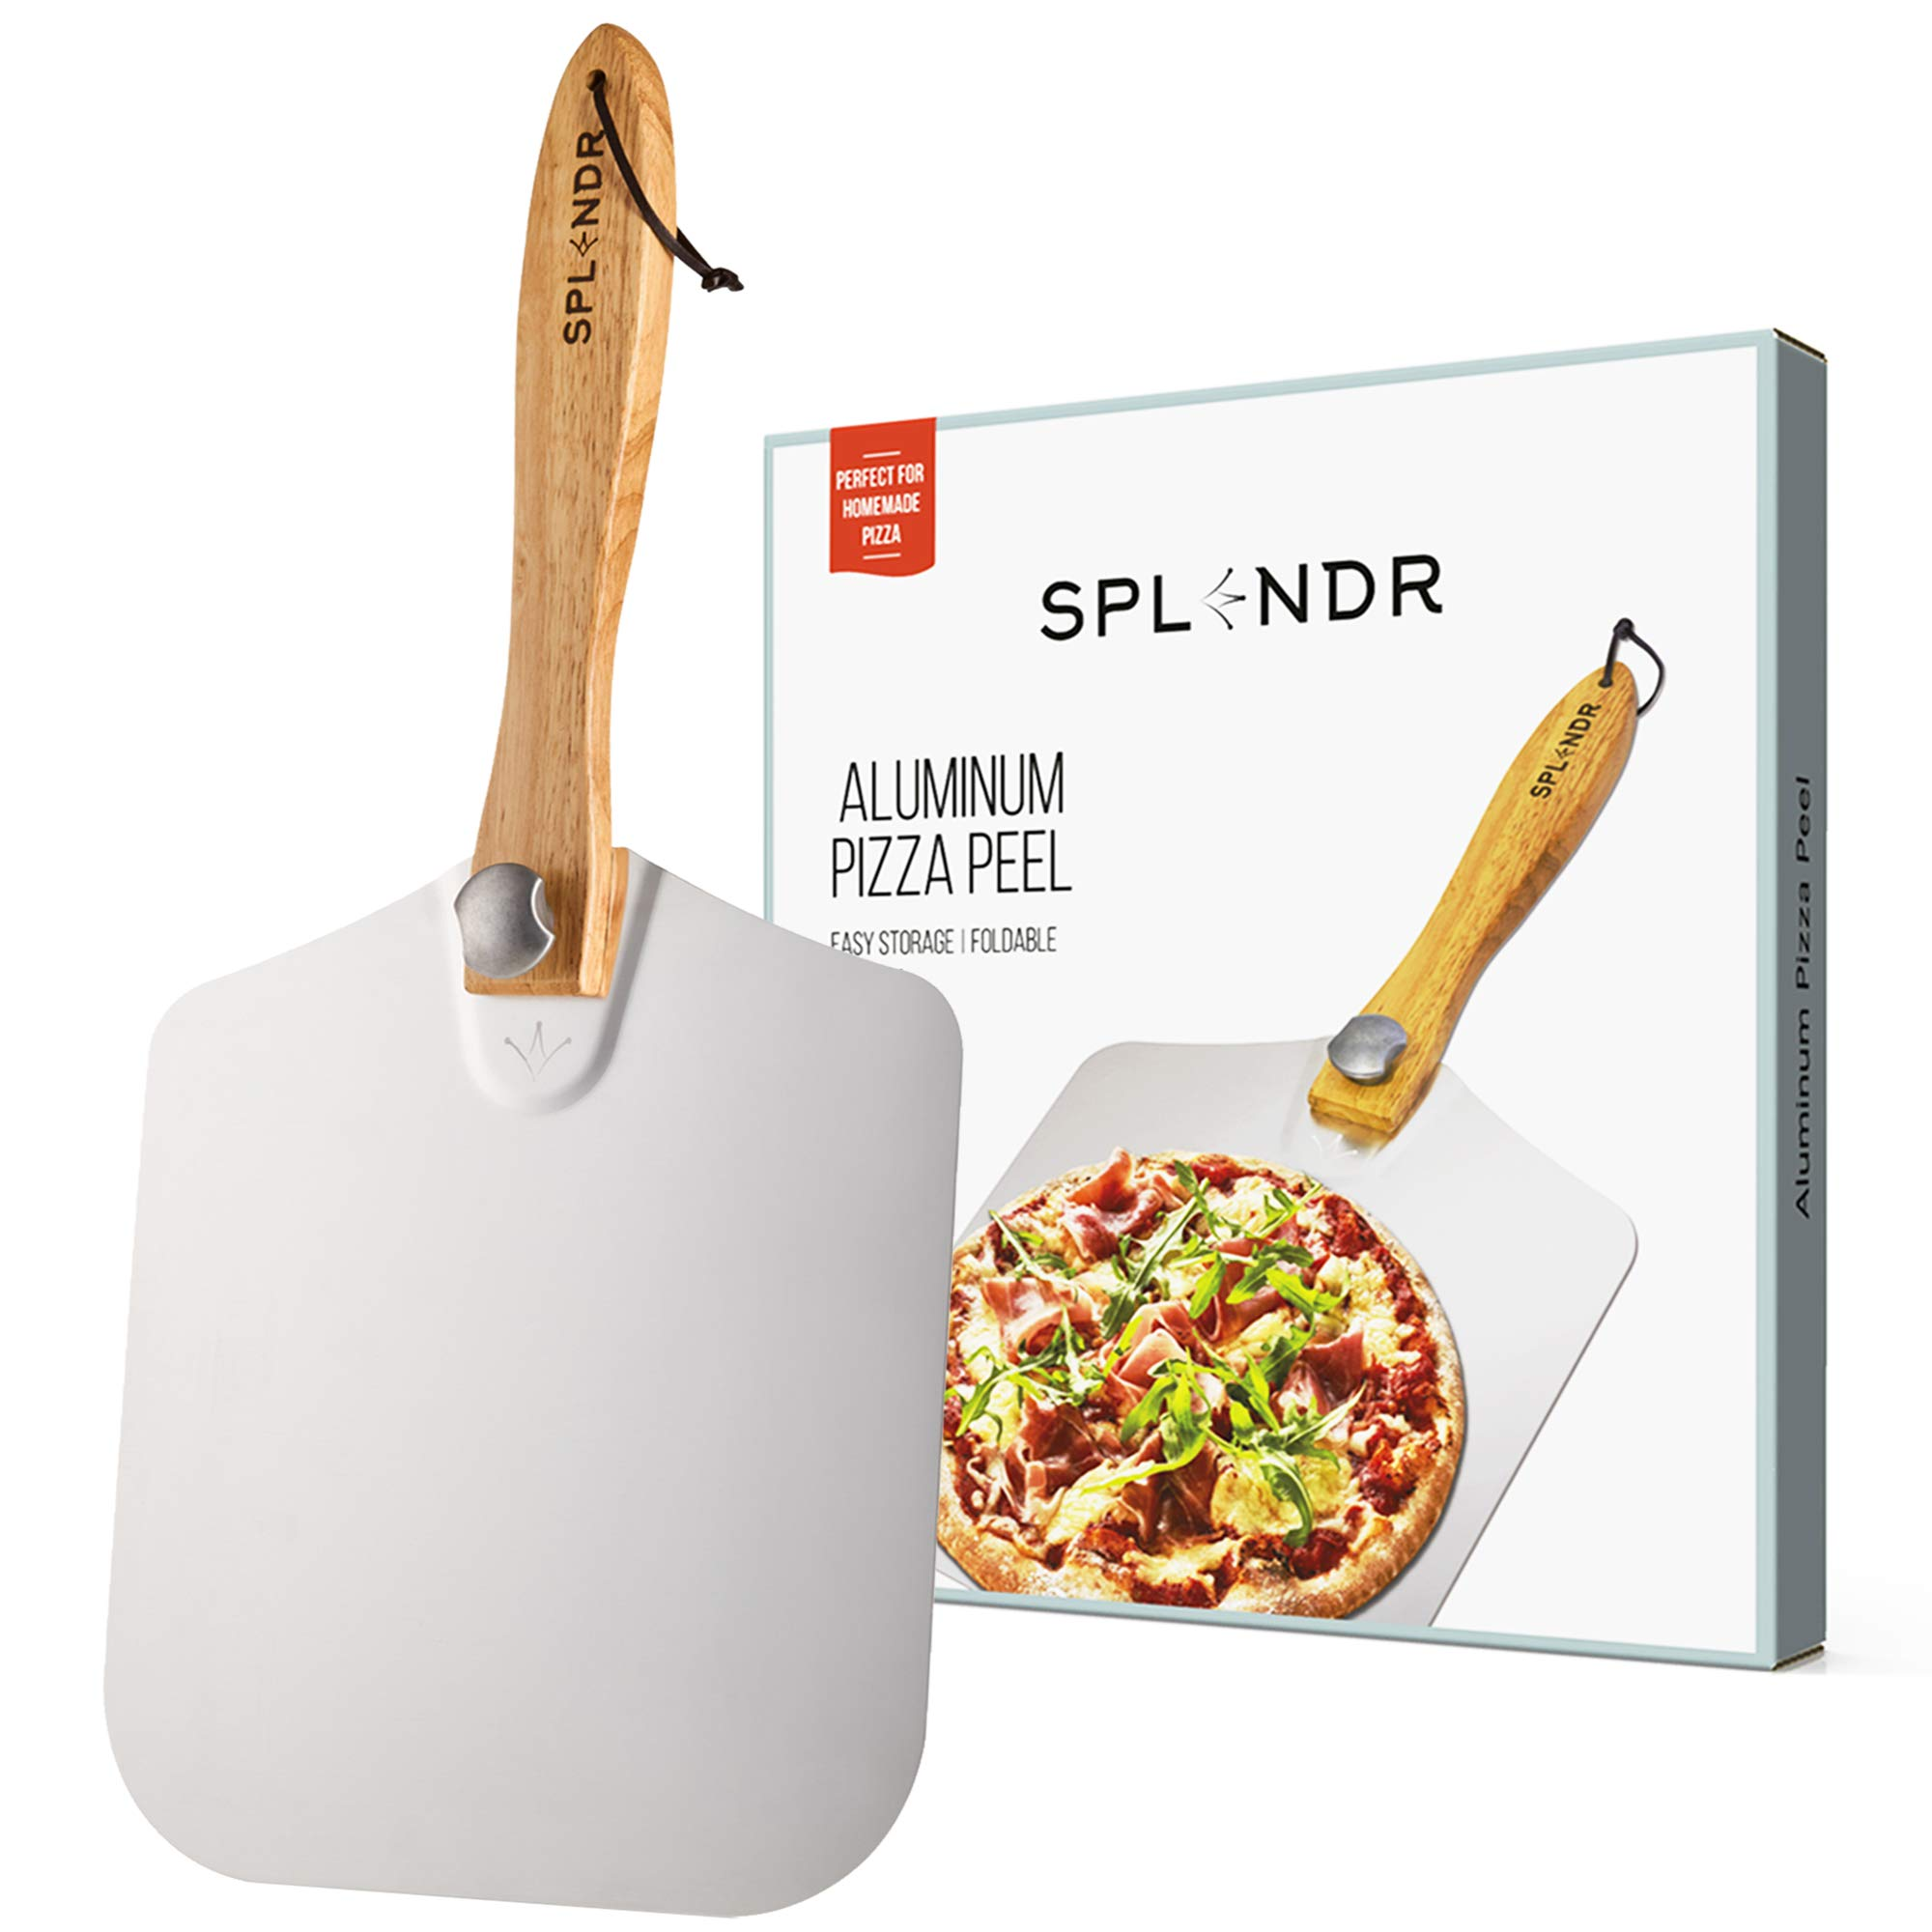 Renewed Kitchen Supply 16-Inch x 18-Inch Aluminum Pizza Peel with Wood Handle